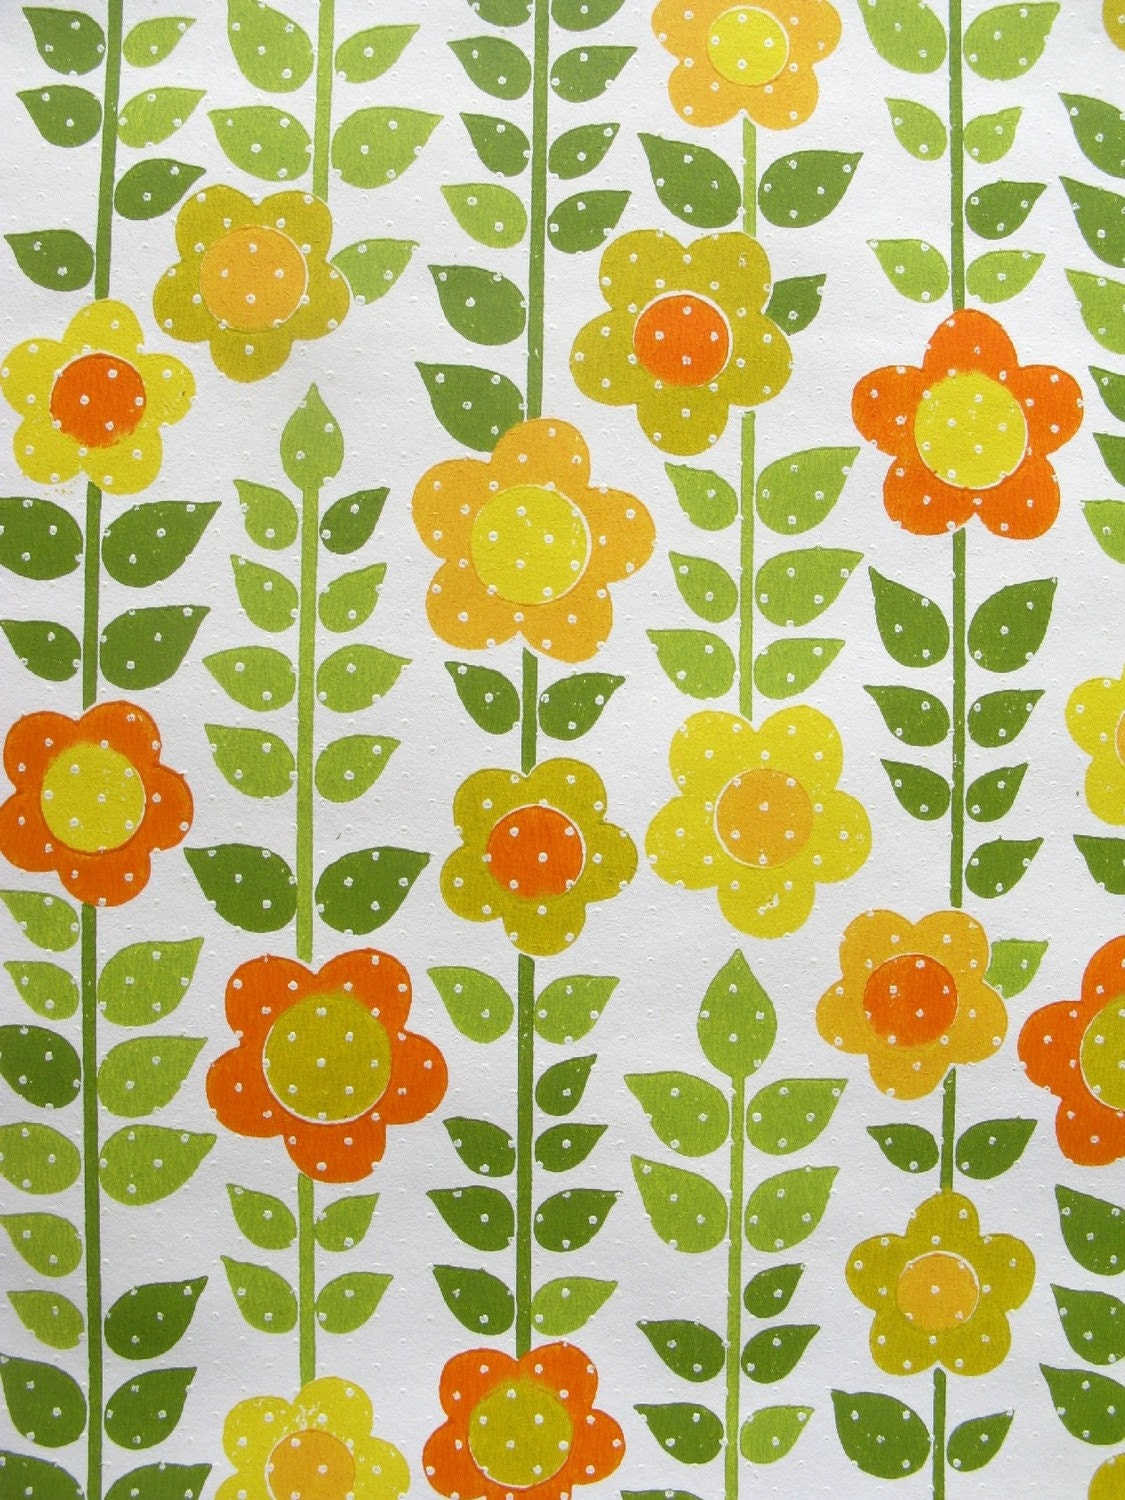 vintage wallpaper - sunny floral with dots - per half yard